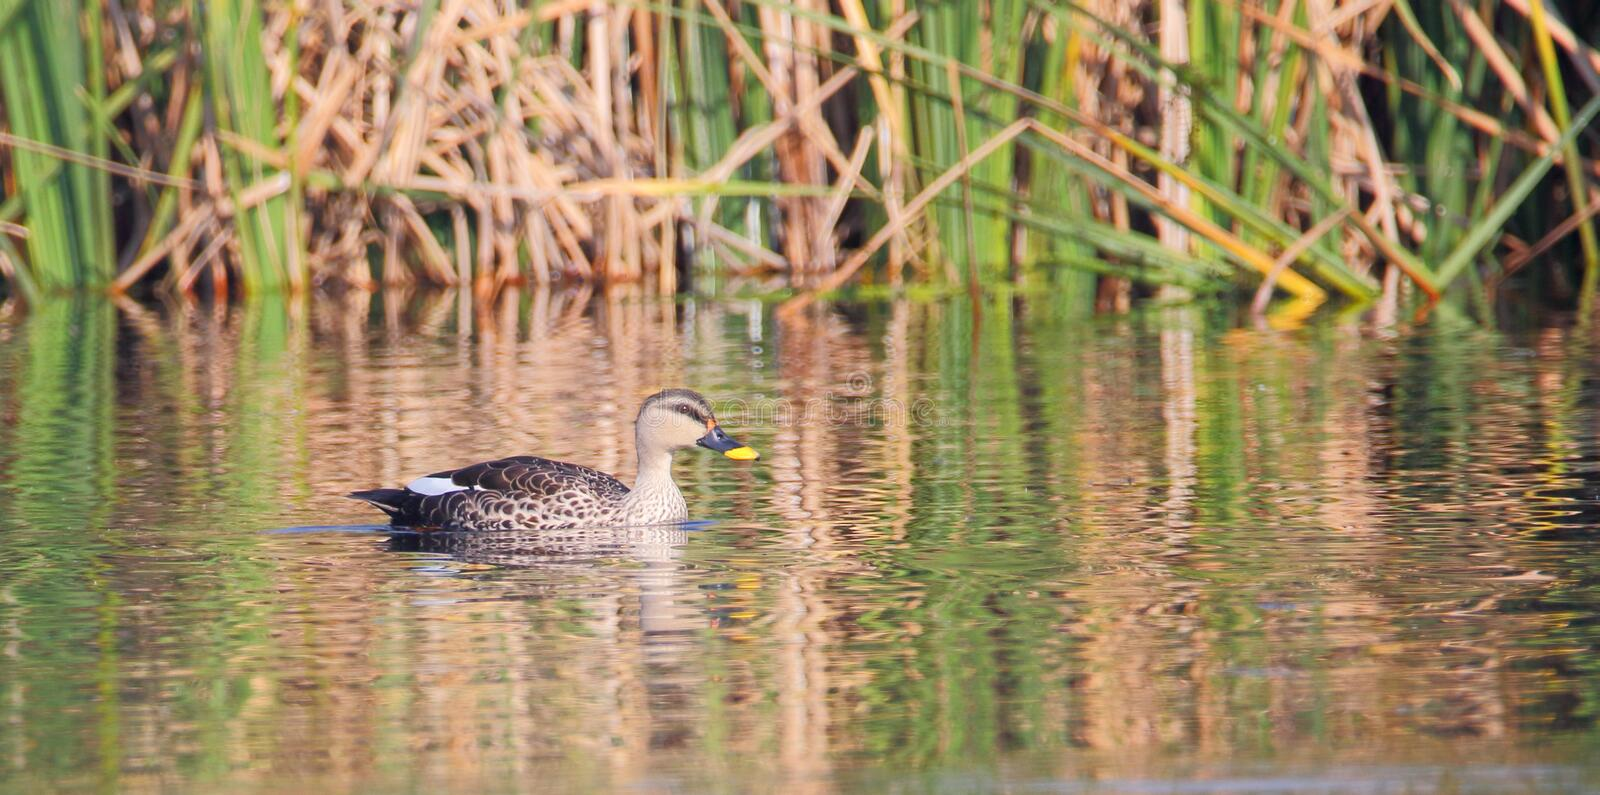 Bird in natures lap. Single spot bill duck swimming in the water of pond. the shadows of grass in the water looked beautiful royalty free stock photo